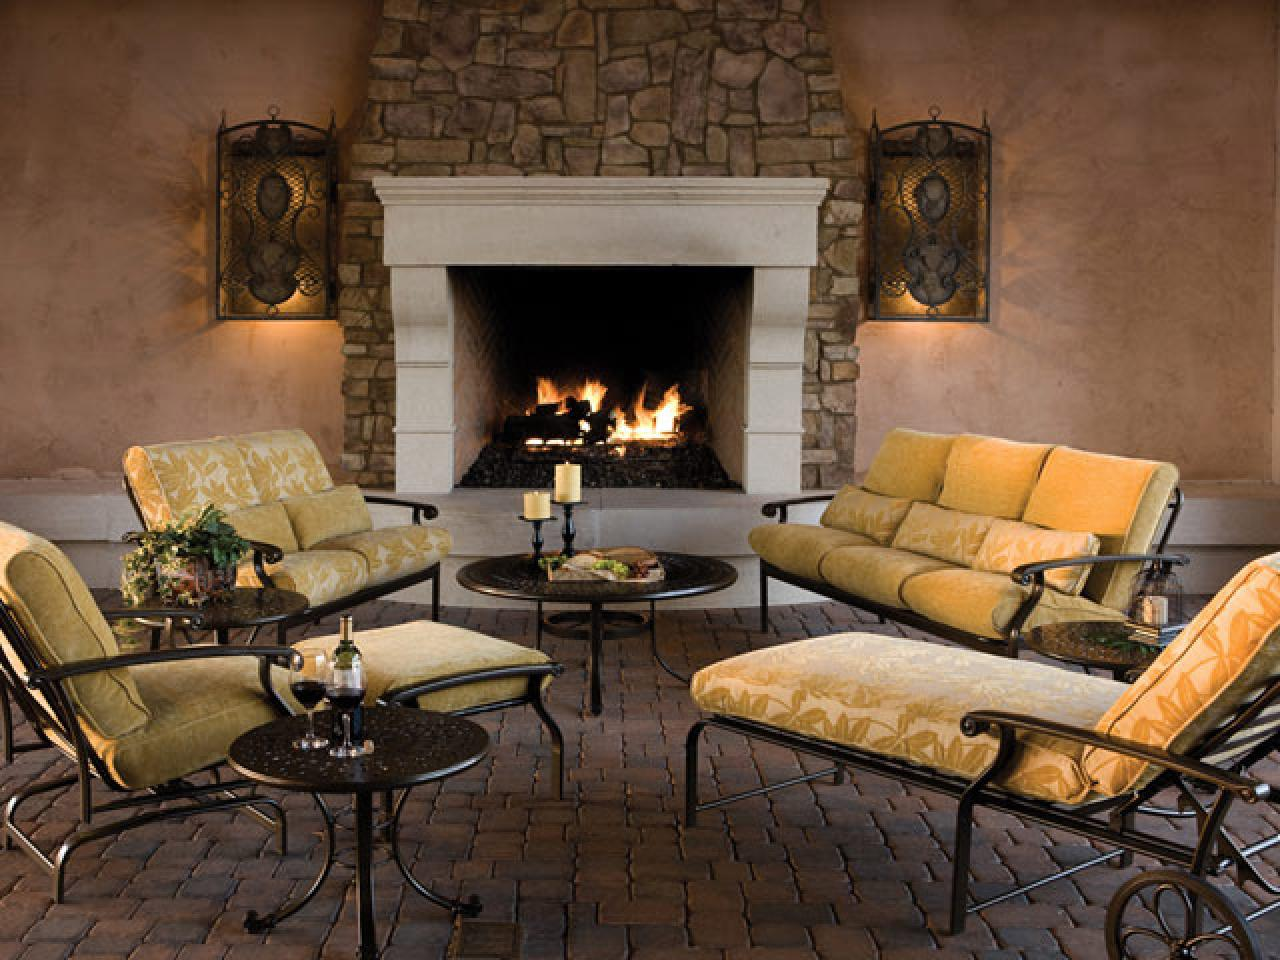 How to plan for building an outdoor fireplace hgtv Fireplace setting ideas